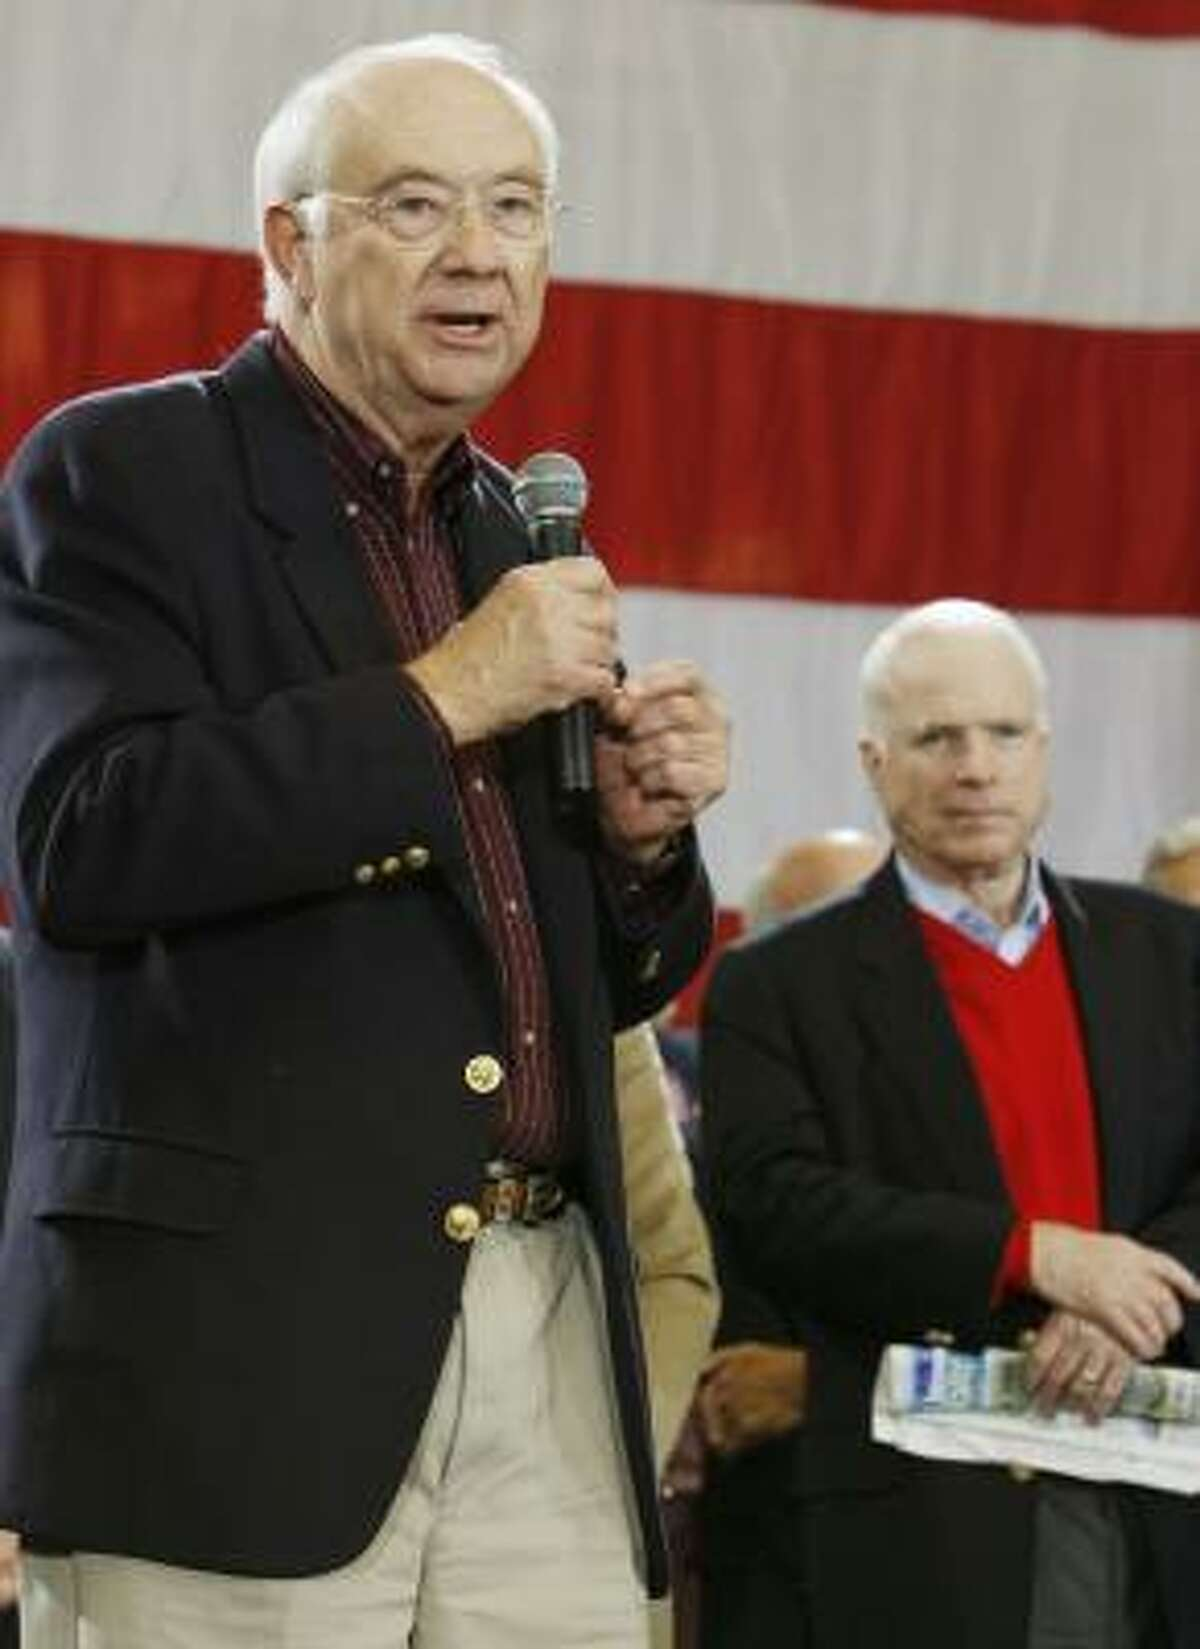 Former Texas Sen. Phil Gramm, left, was blasted by Sen. John McCain, right, for his comments on the economy.